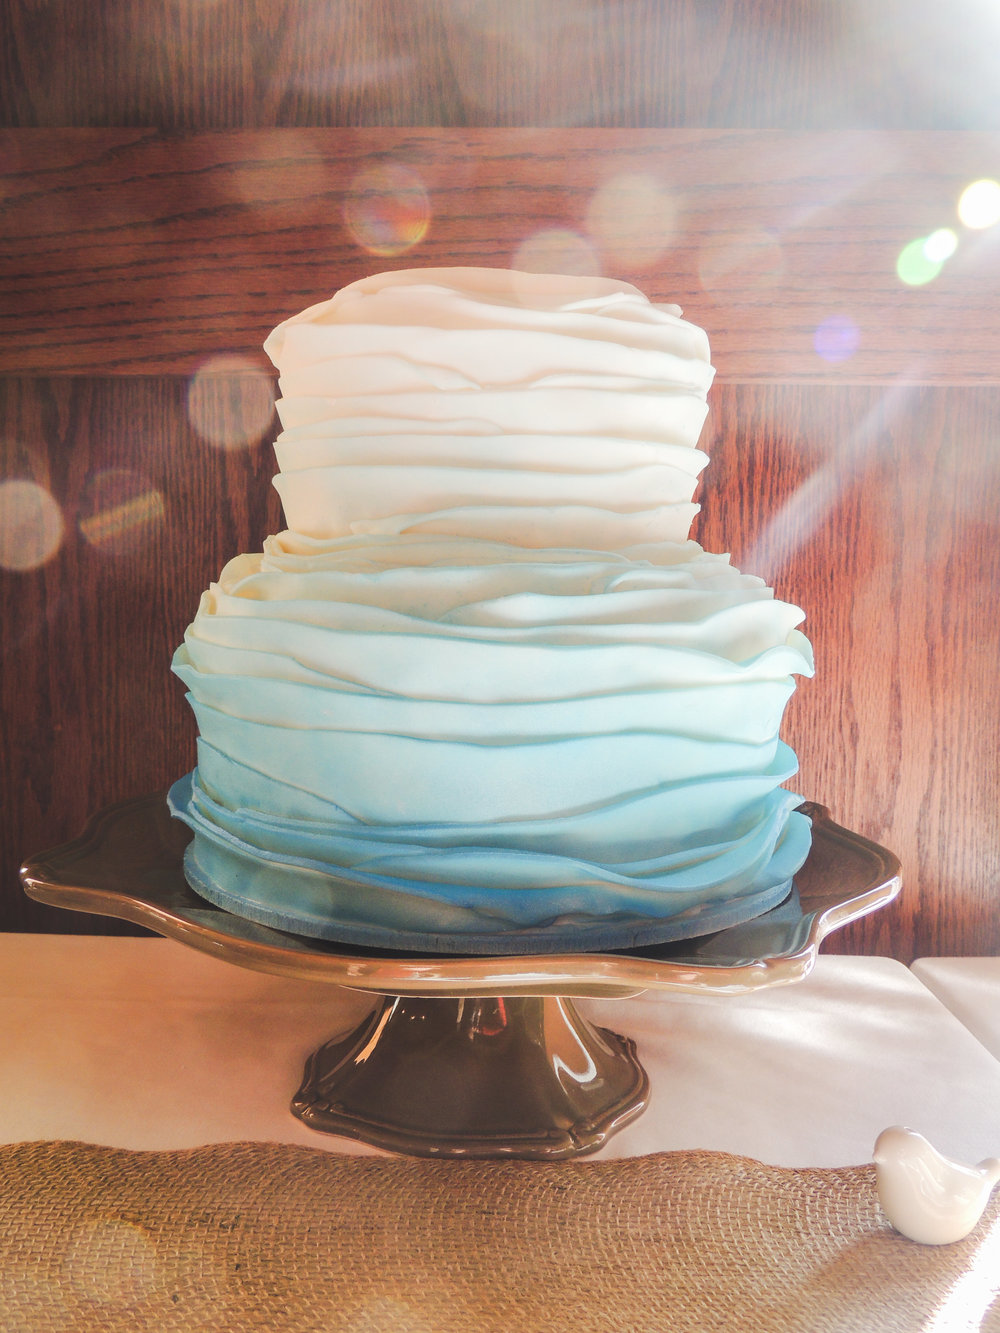 Jackie Edible Art Bakery Brainerd Wedding Cakes-38.jpg